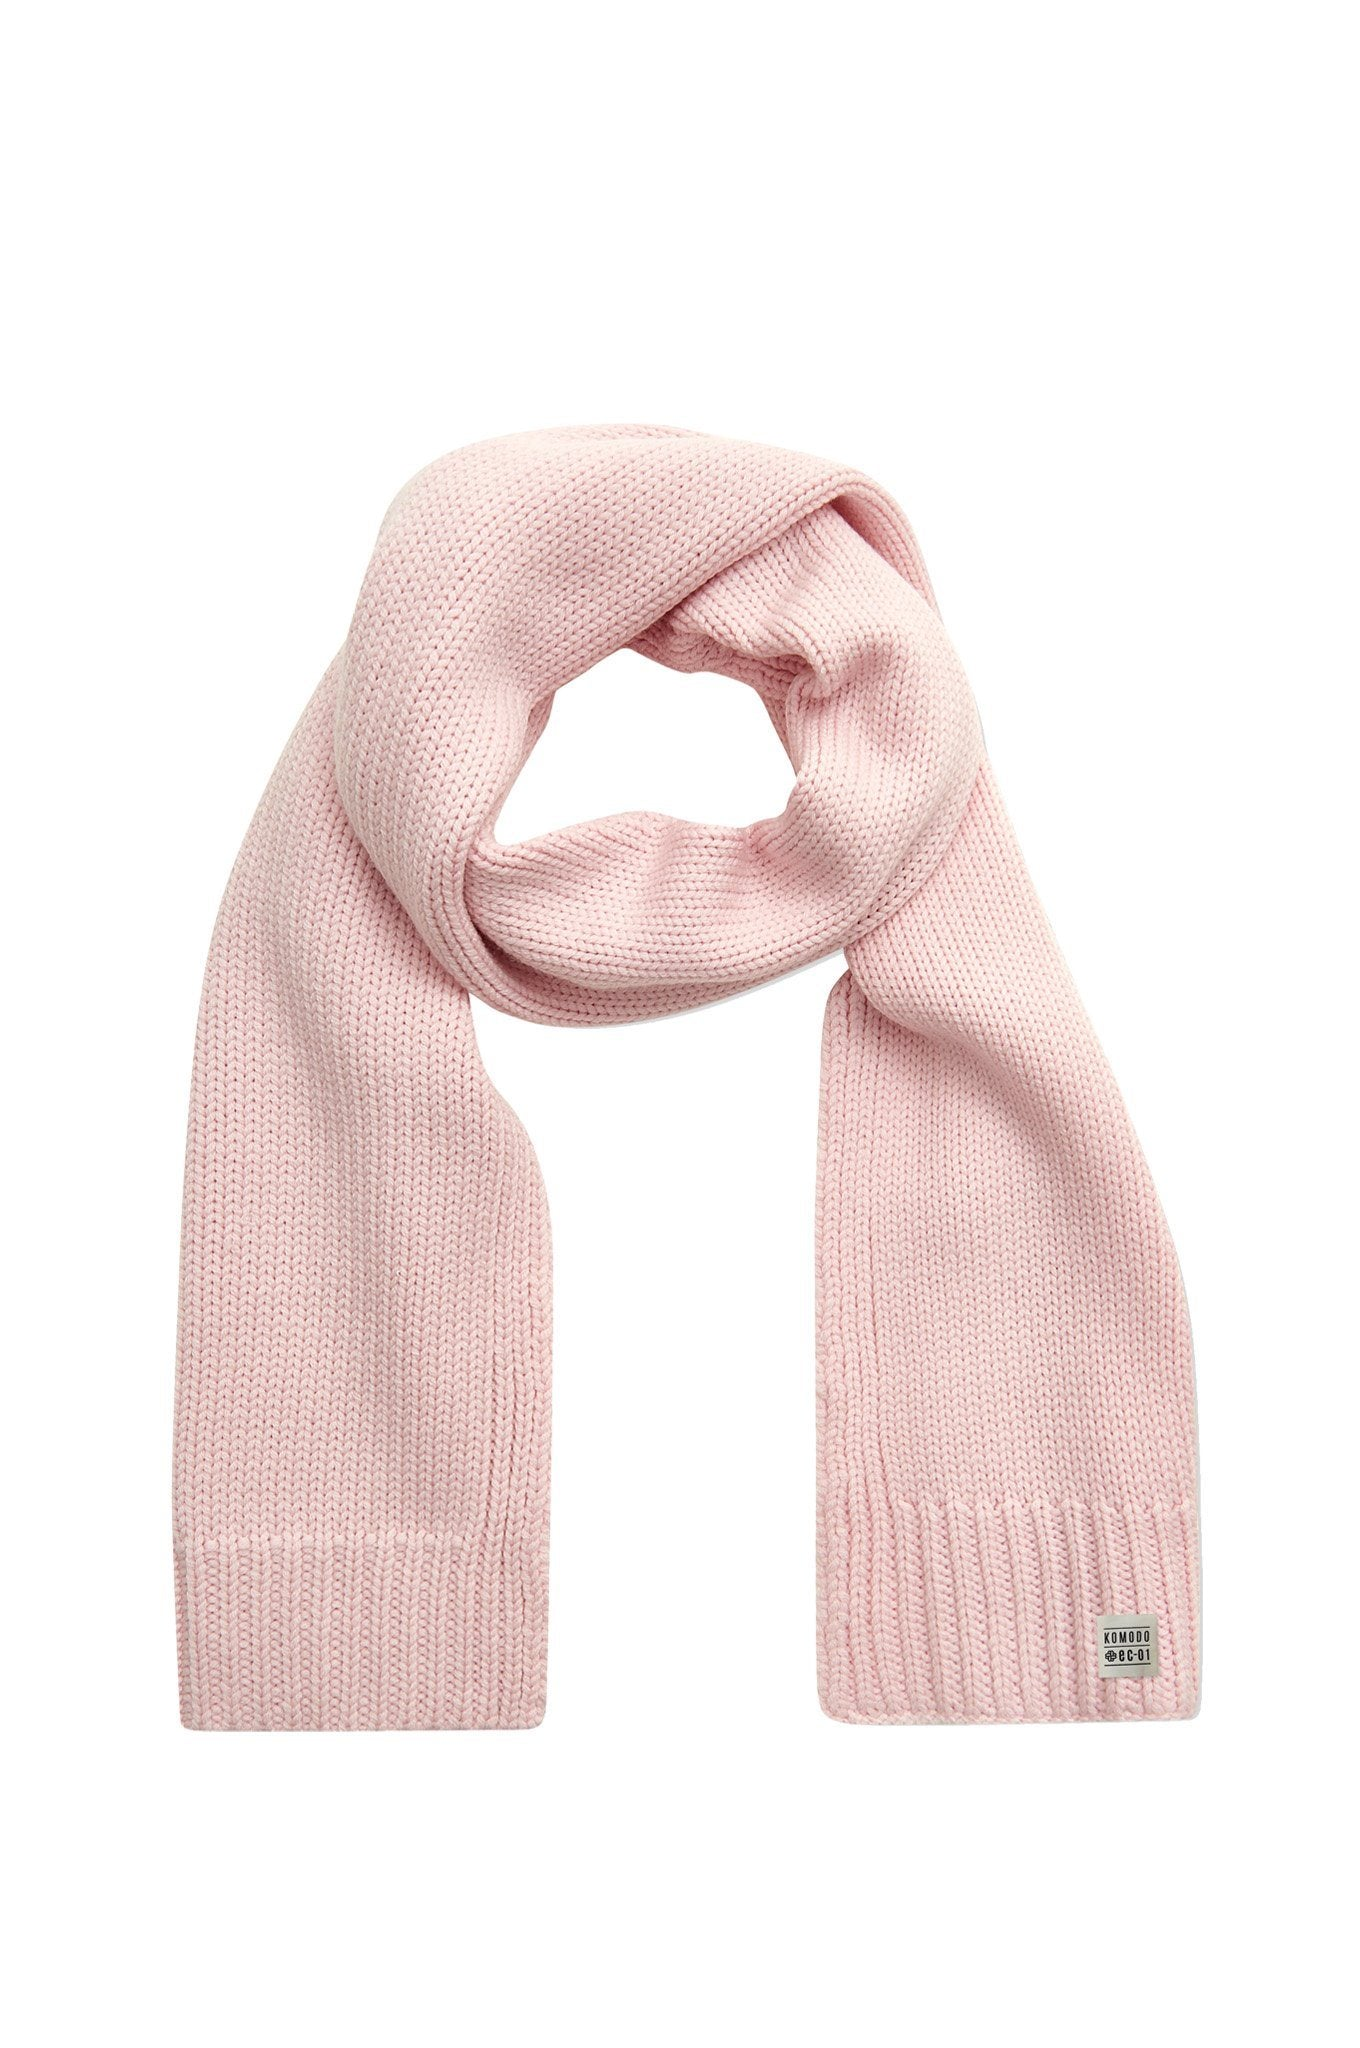 RIM Merino Wool Scarf Shell - Komodo Fashion